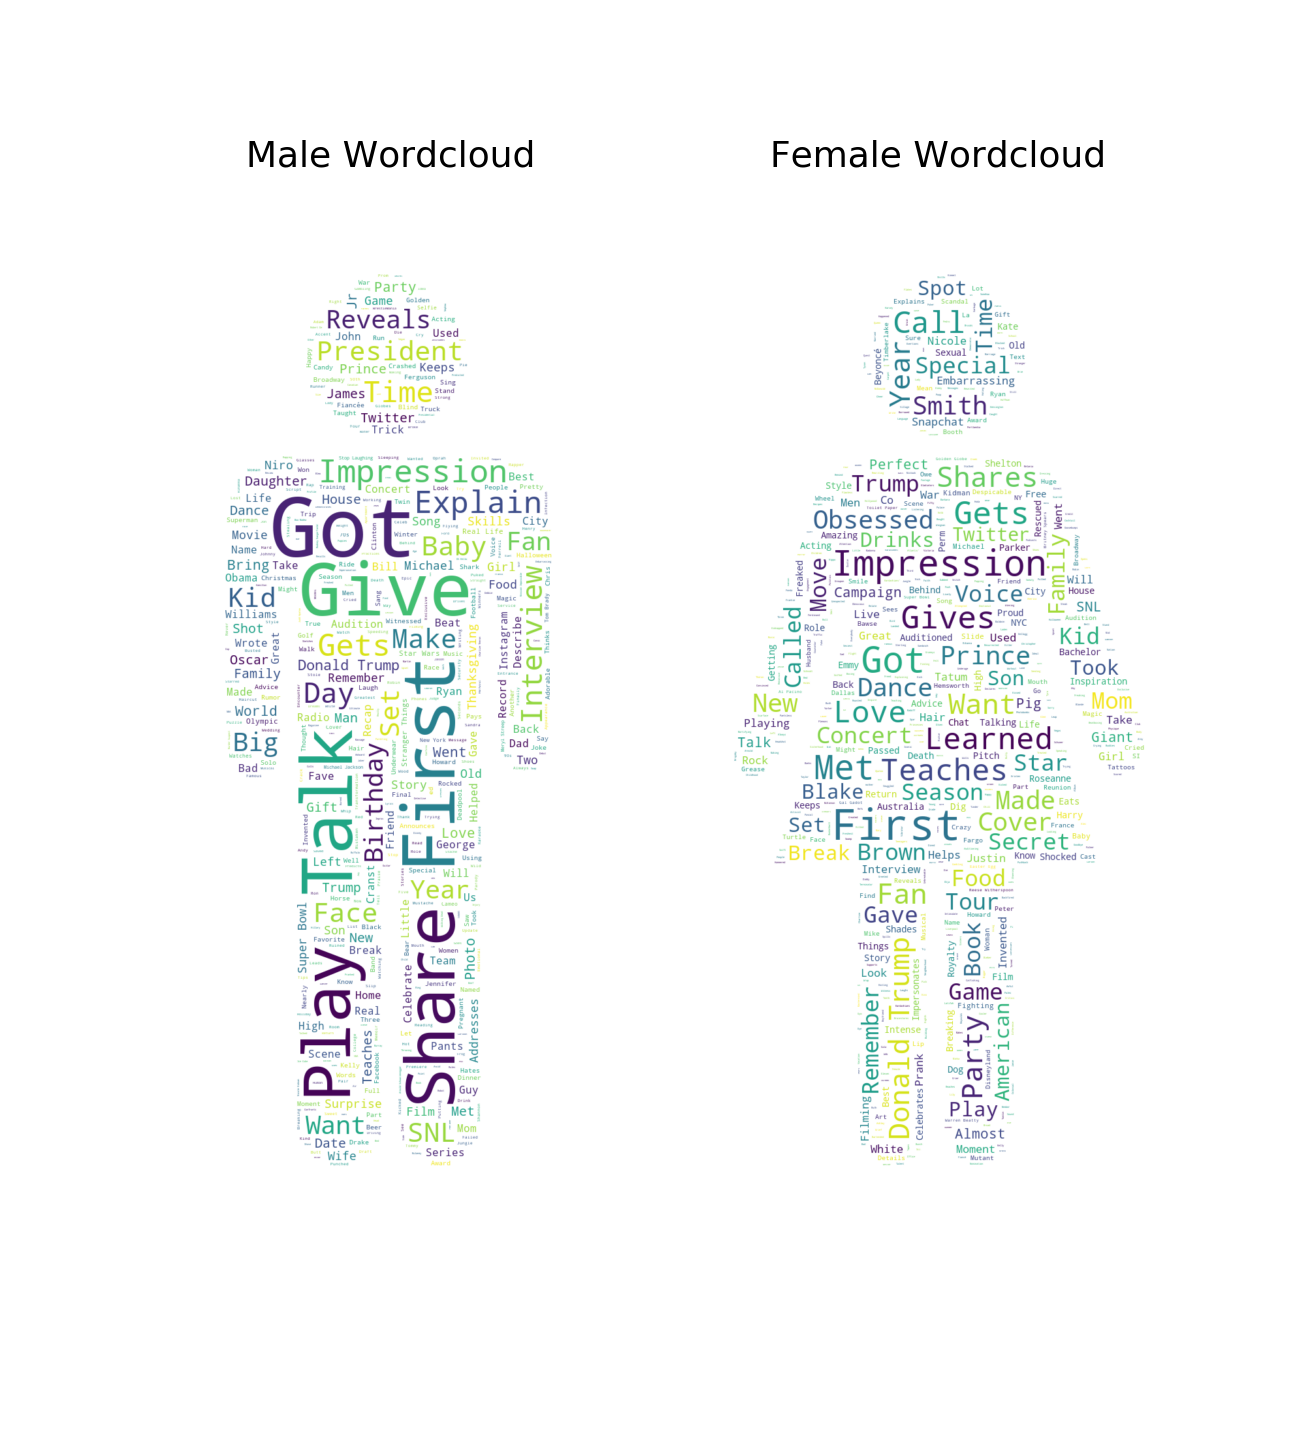 Visualizing Sexism in Conan O'Brien's YouTube Video Titles